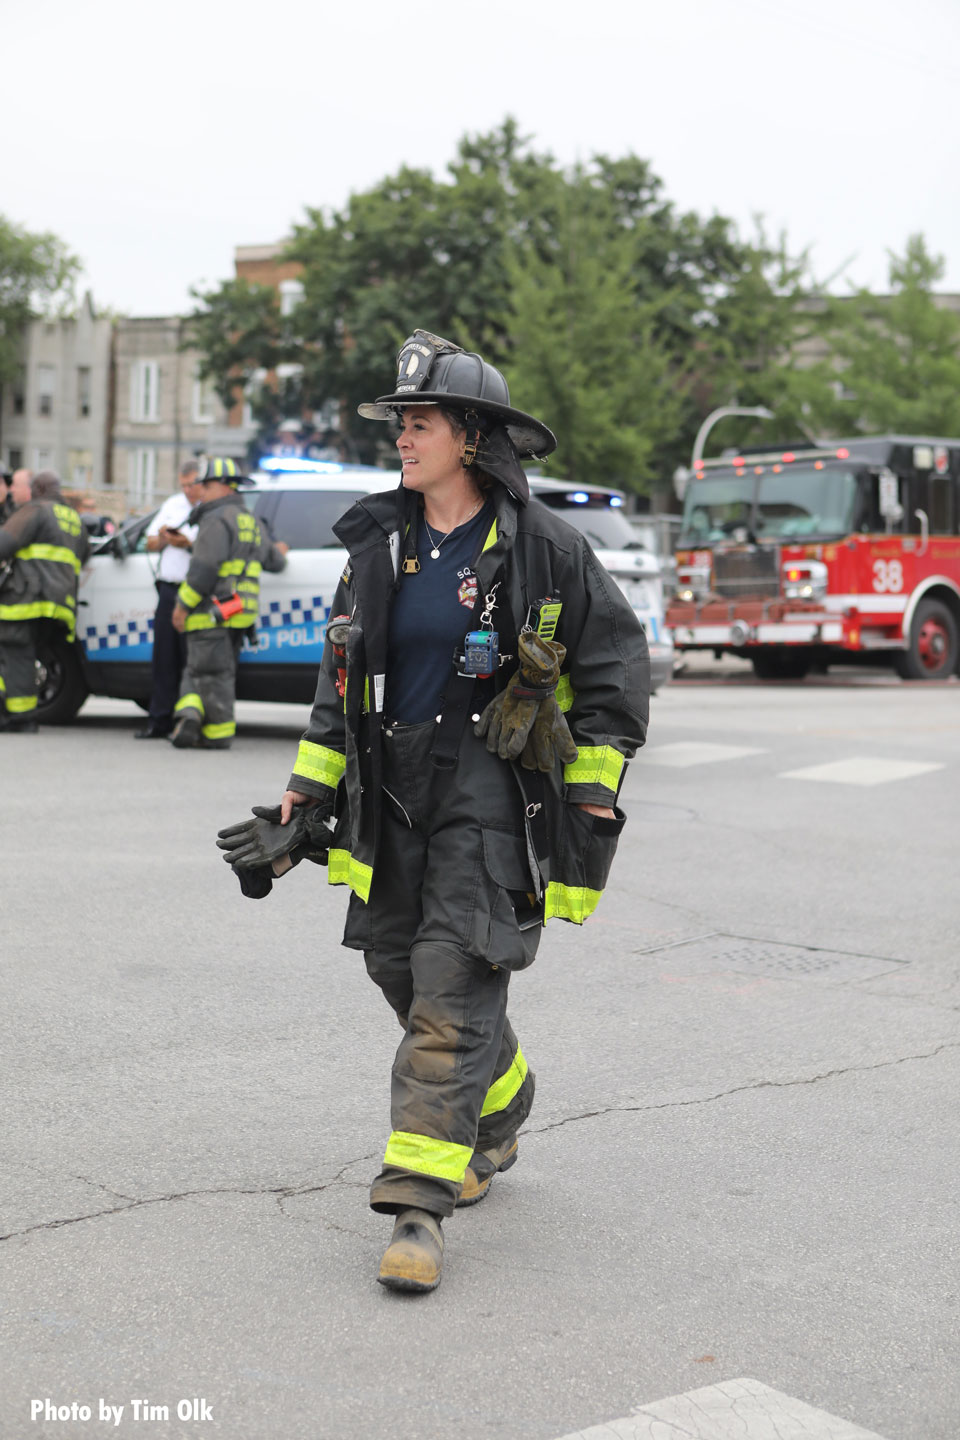 A Chicago firefighter on scene at the building collapse.